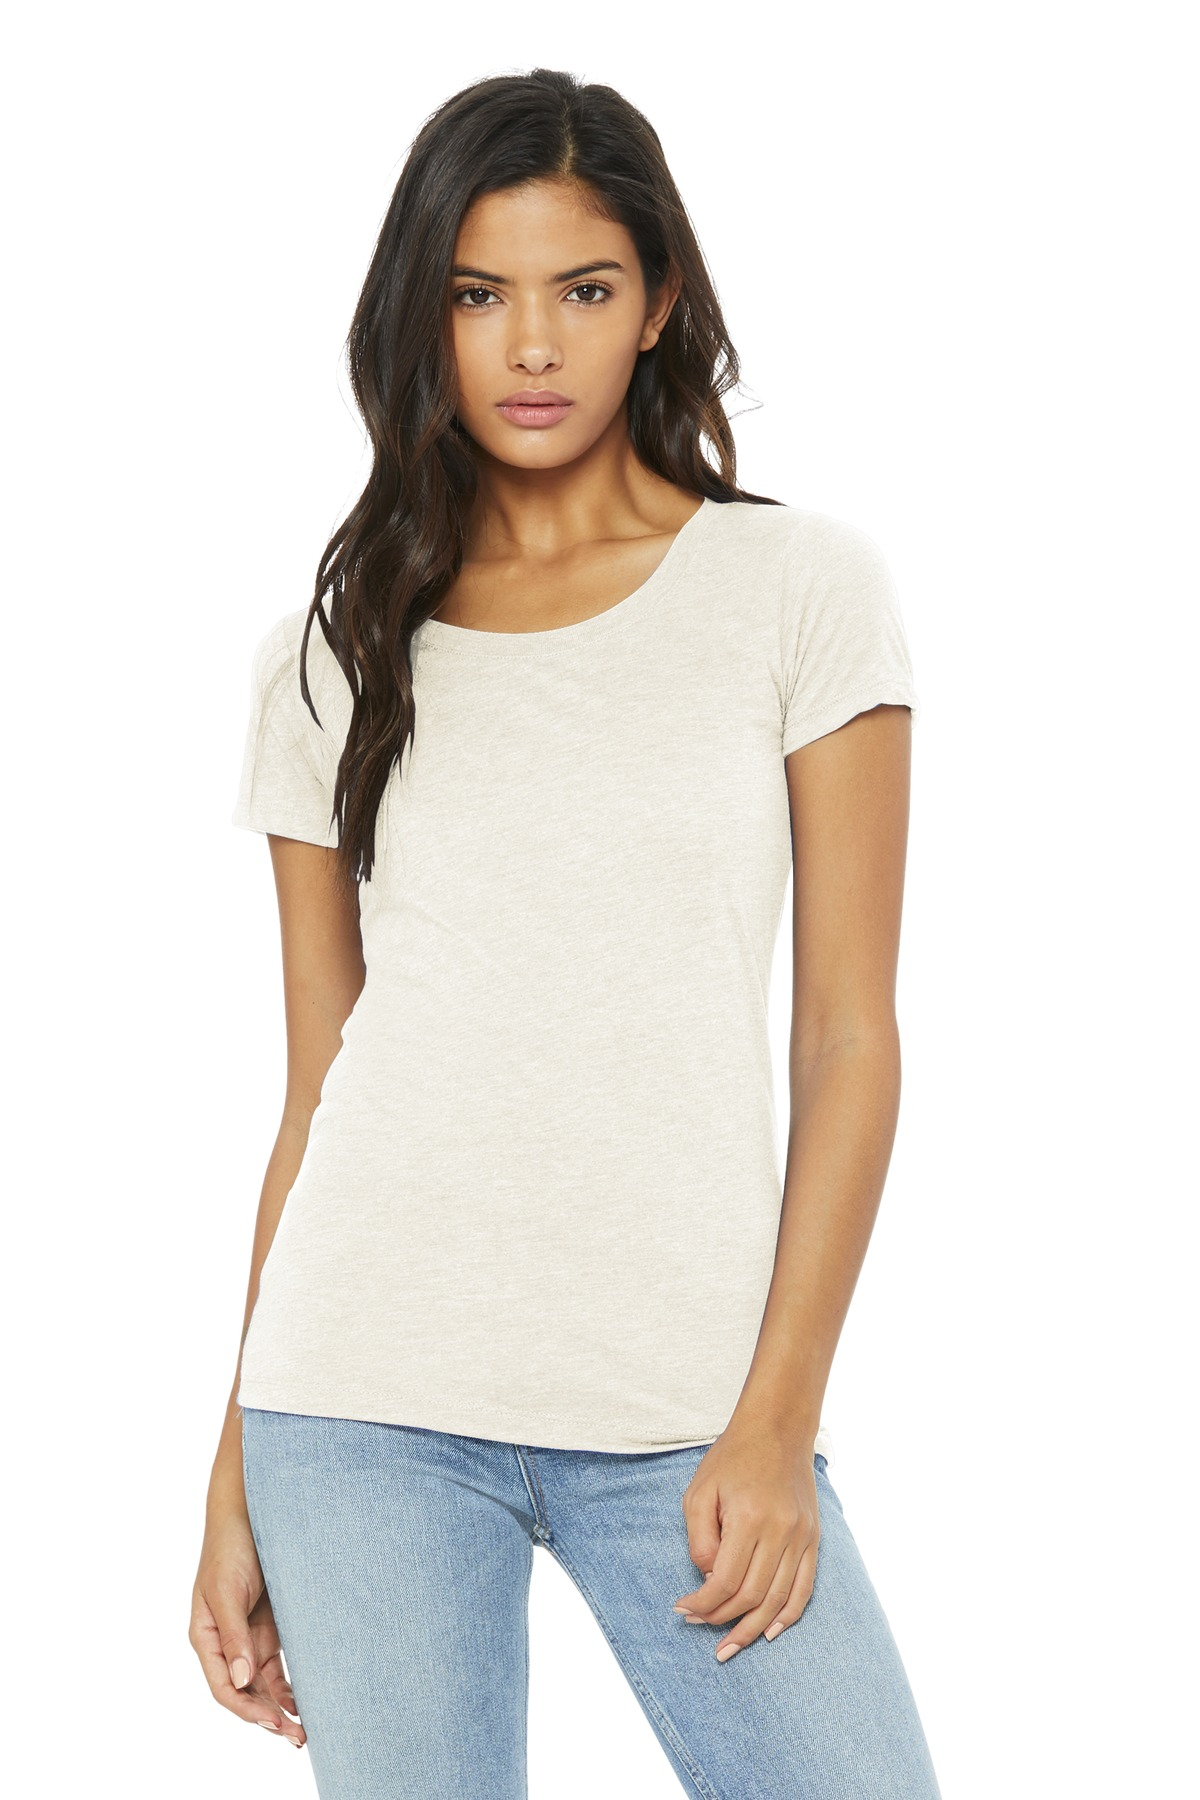 BELLA+CANVAS  ®  Women's Triblend Short Sleeve Tee. BC8413 - Oatmeal Triblend